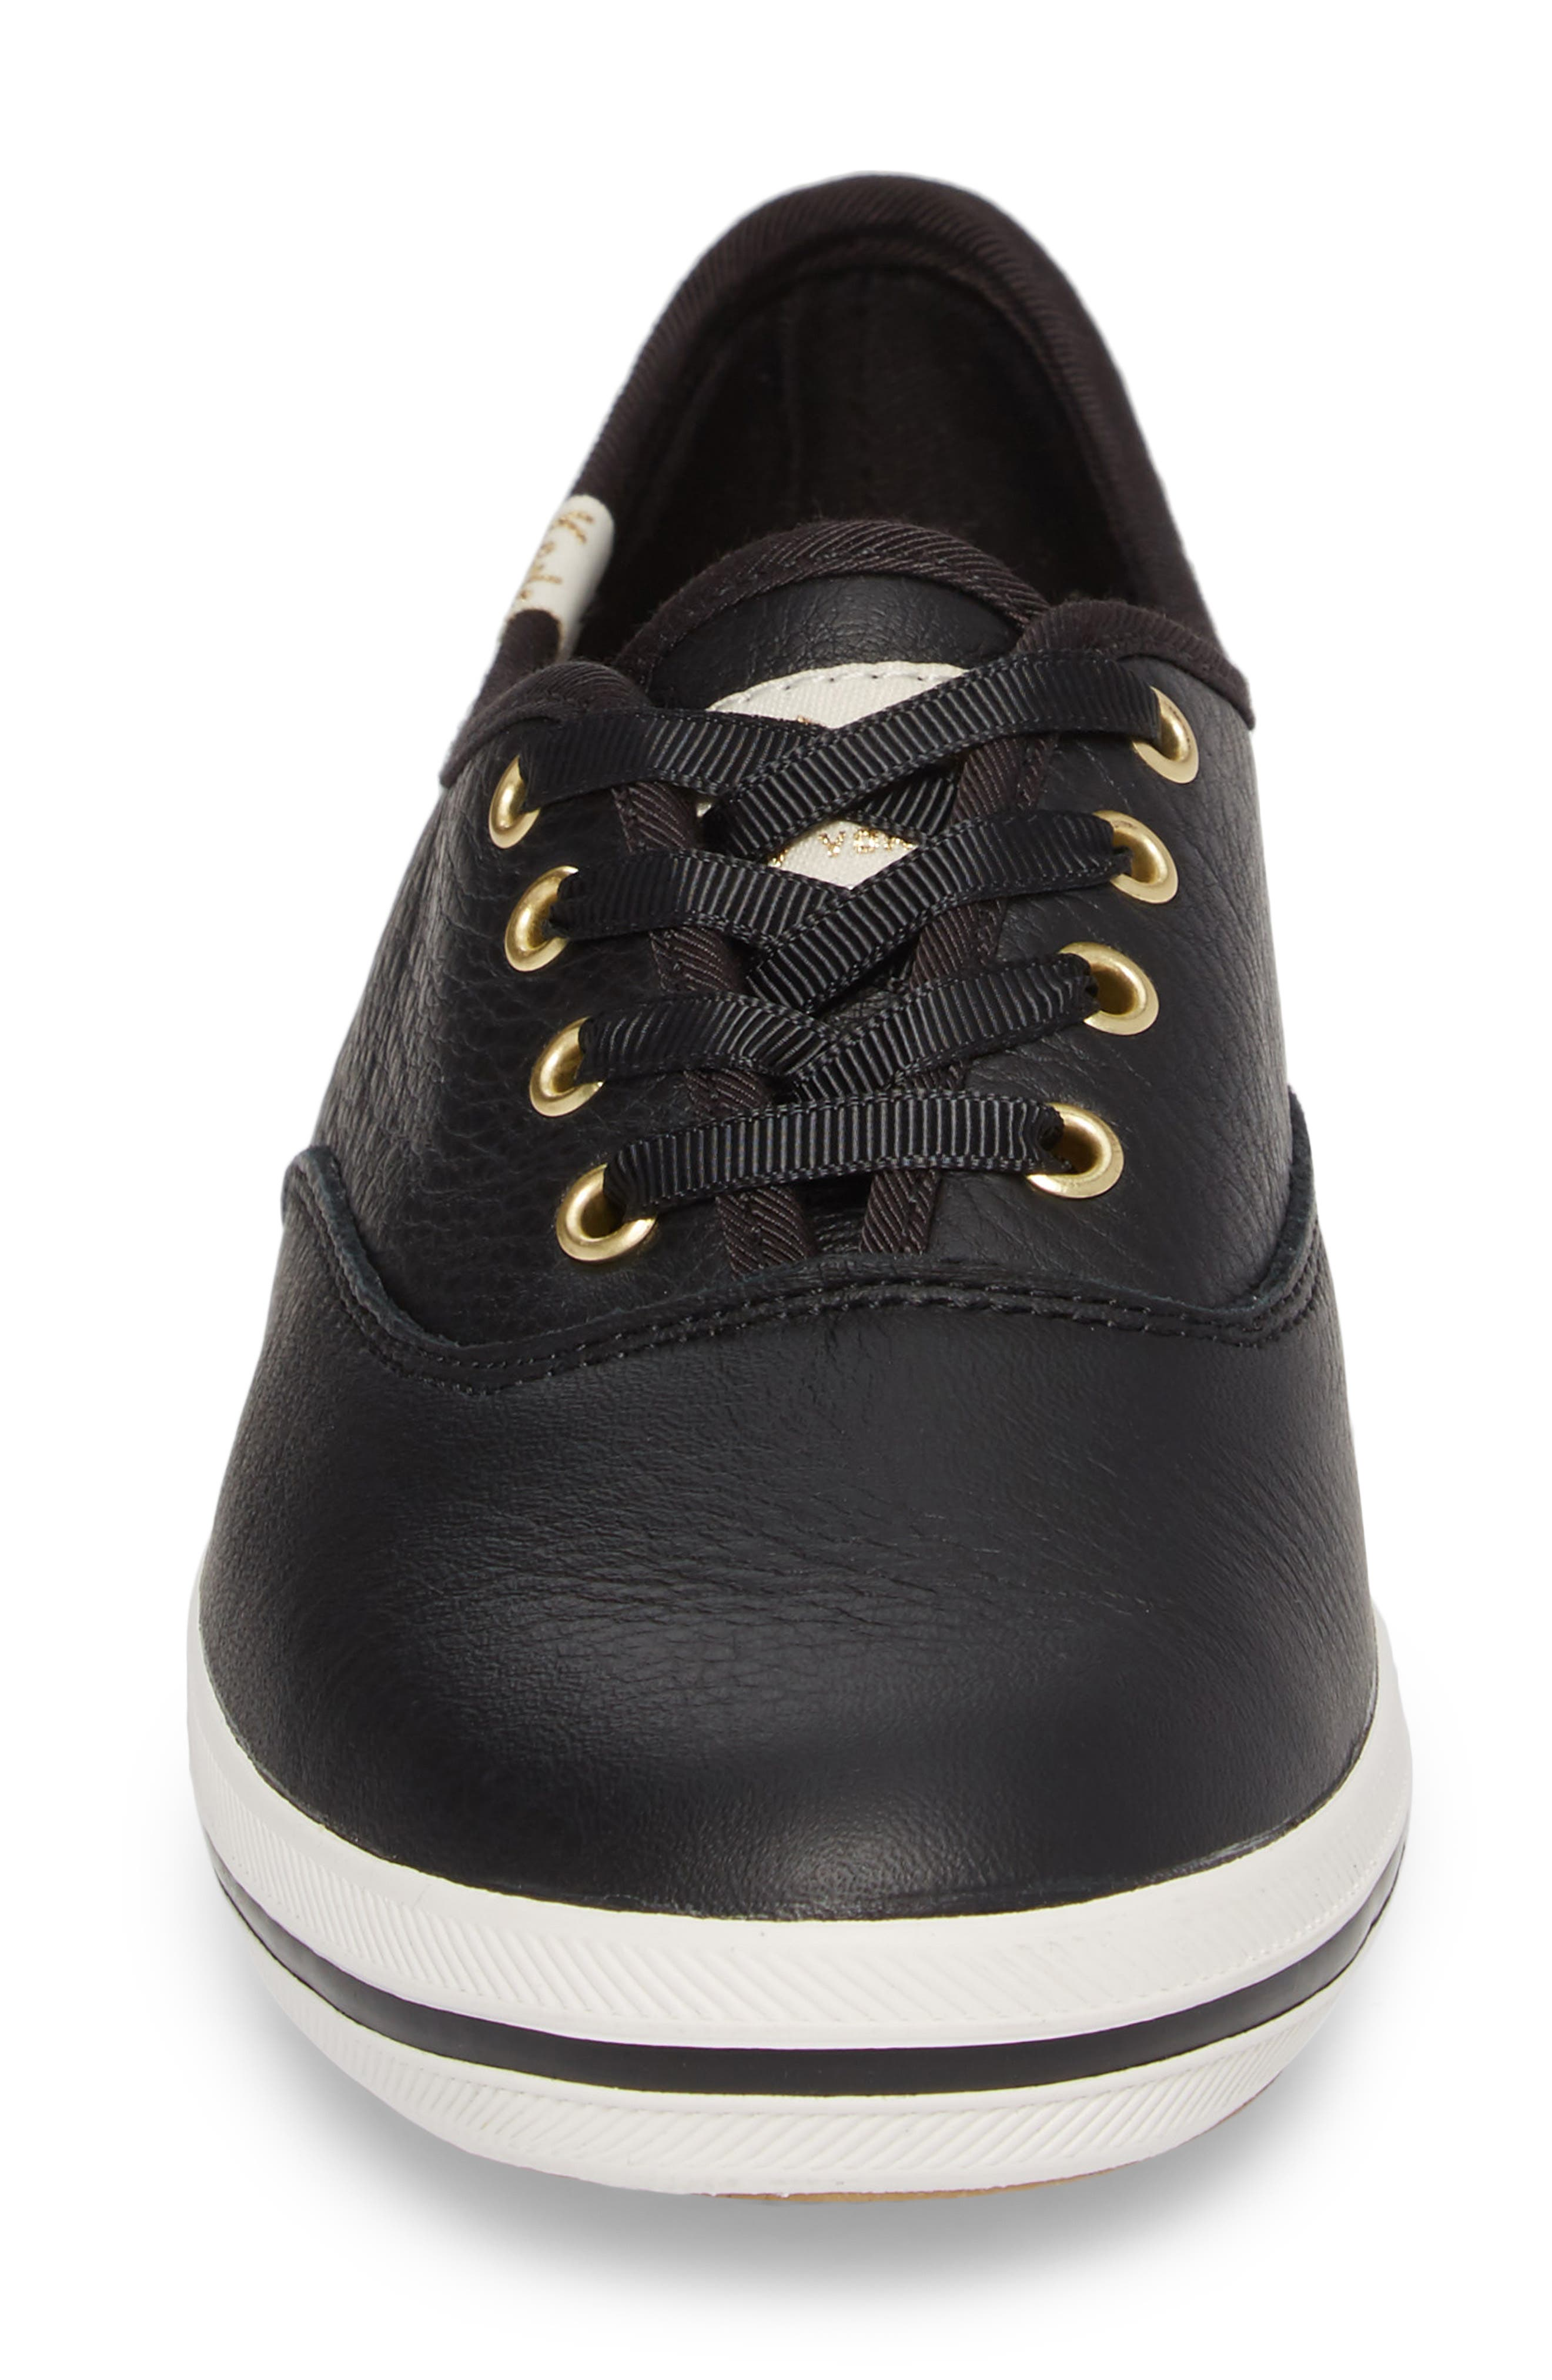 leather sneaker,                             Alternate thumbnail 4, color,                             BLACK LEATHER